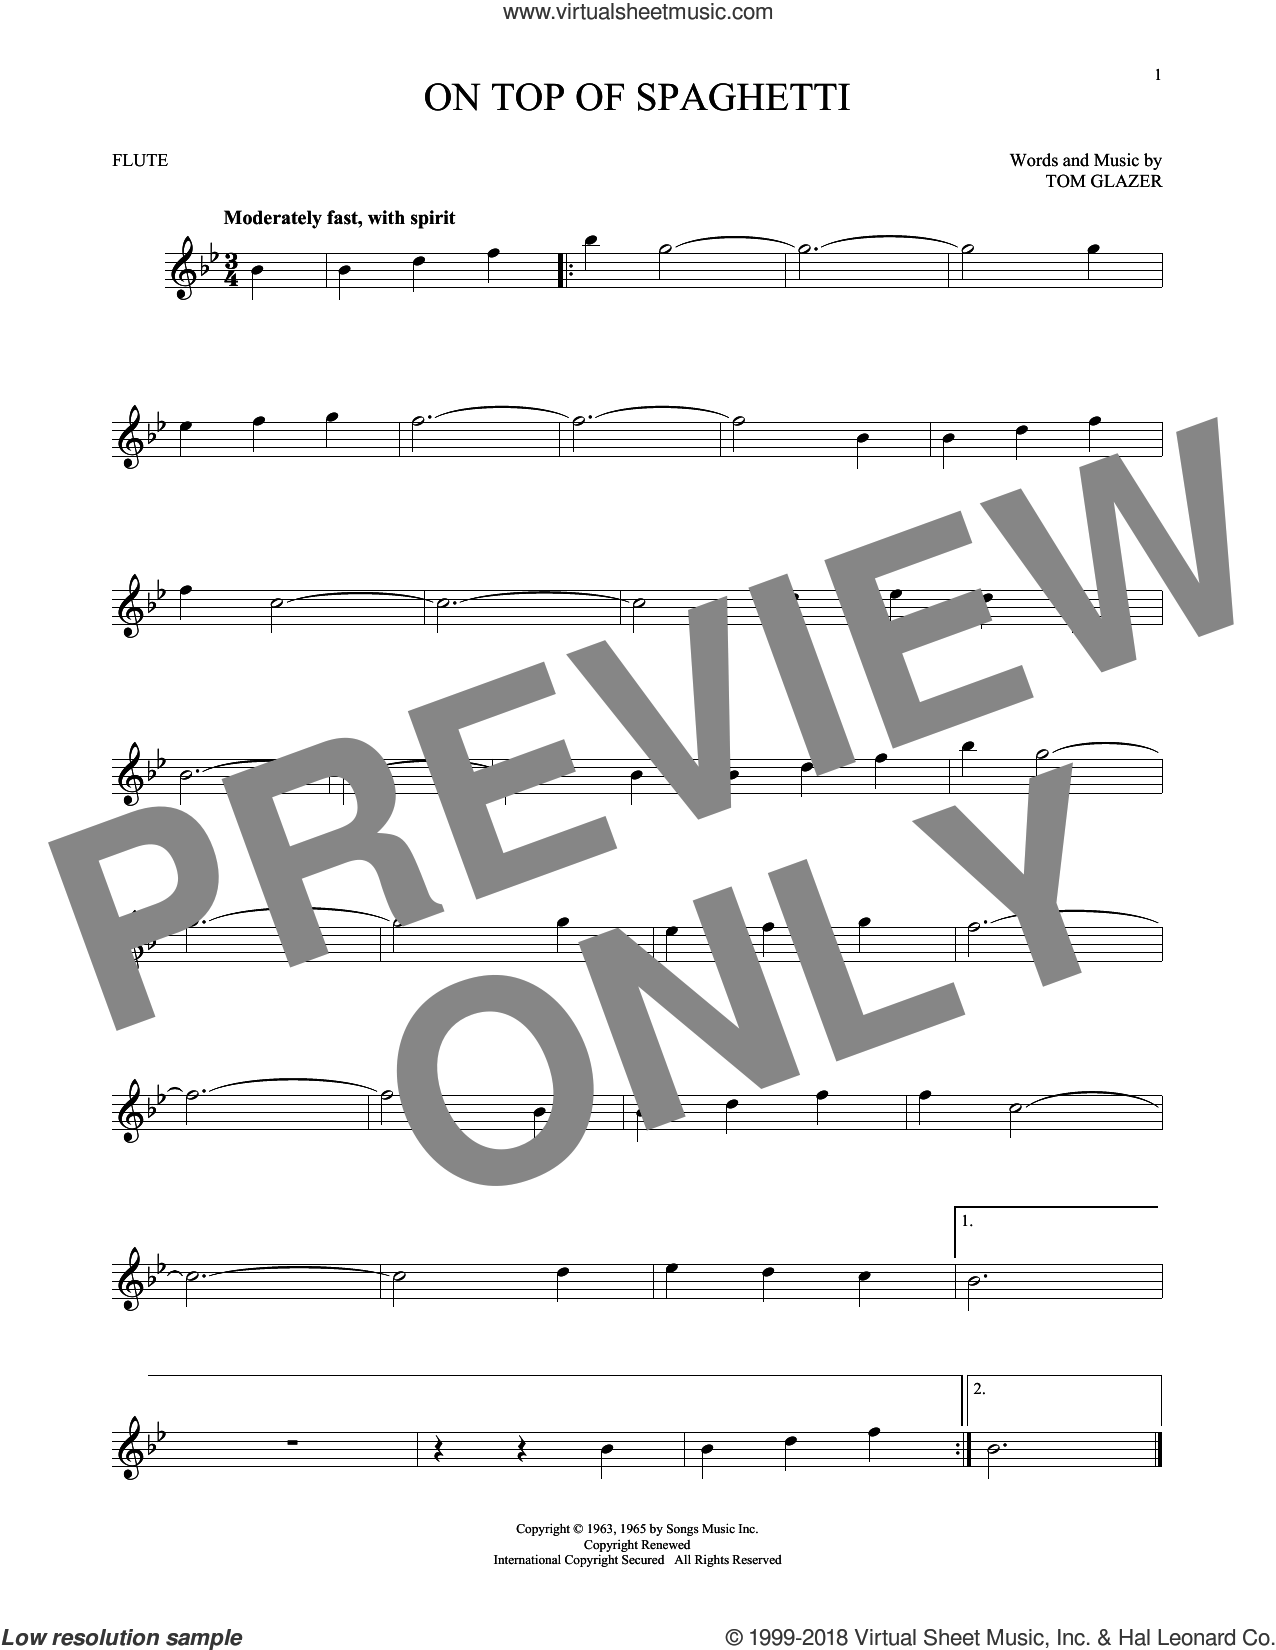 On Top Of Spaghetti sheet music for flute solo by Tom Glazer, intermediate skill level